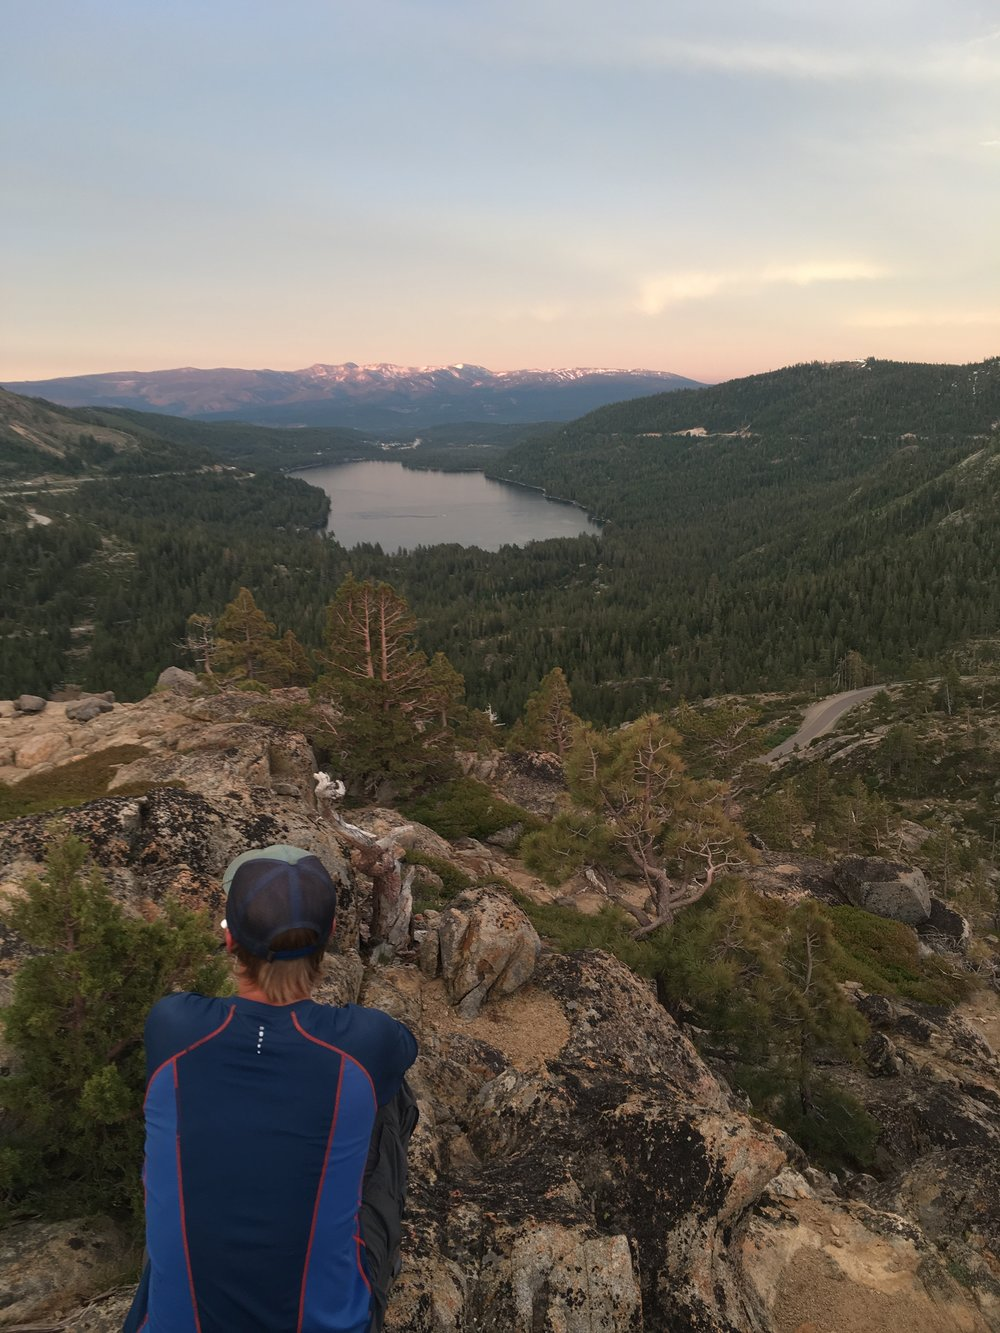 Noel looking out over Donner Lake.